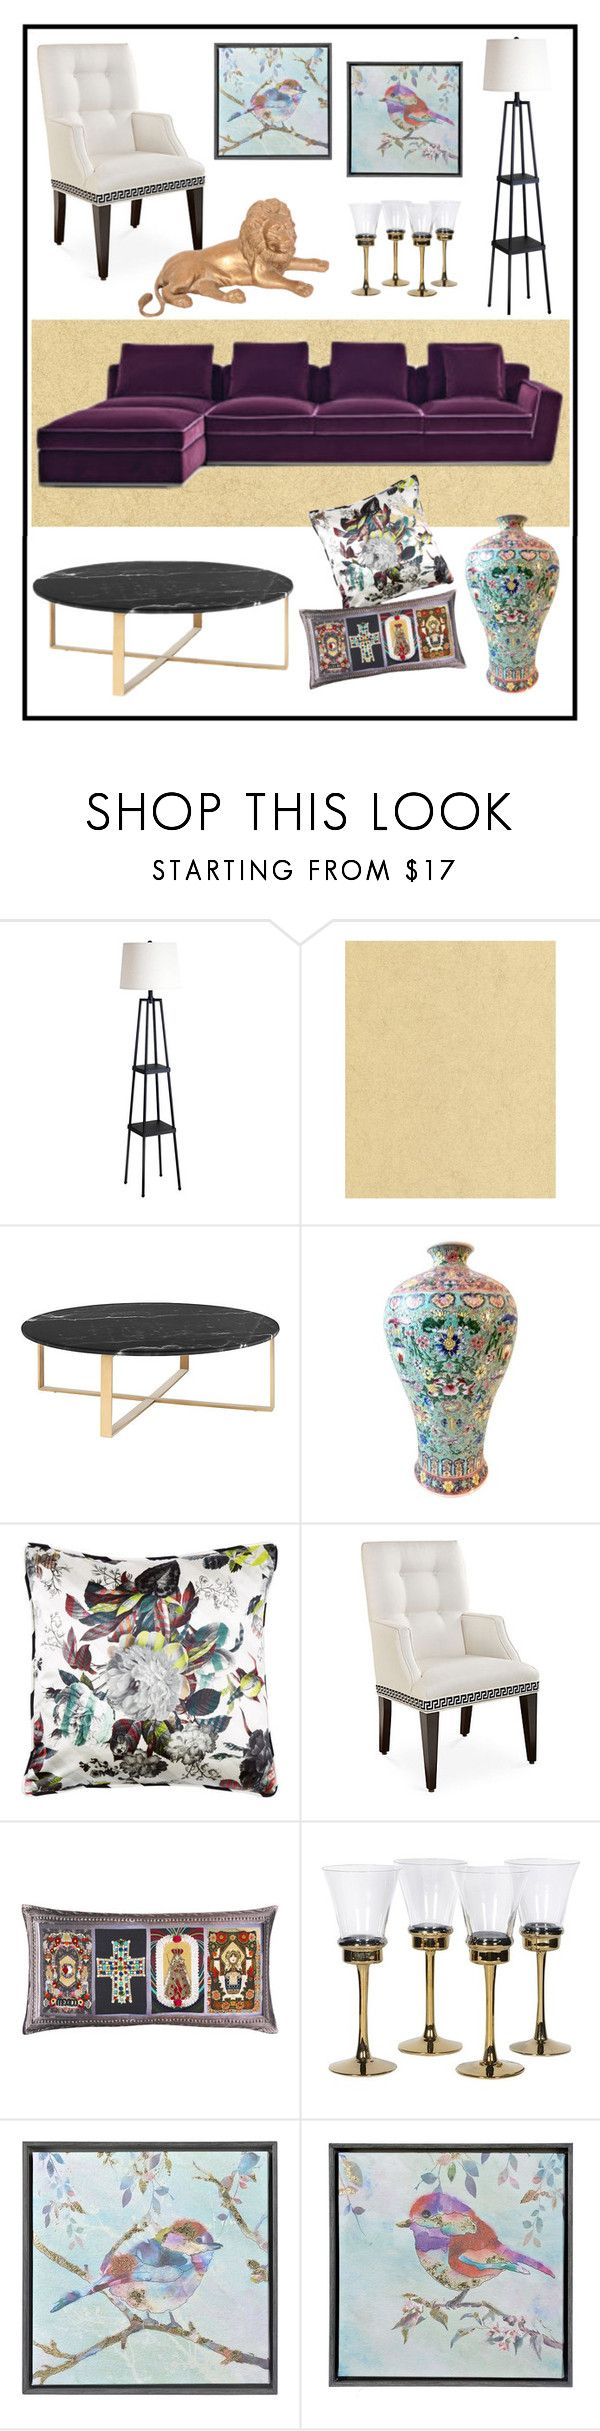 """""""DESIGN AT LIVING ROOM!!!!"""" by kskafida ❤ liked on Polyvore featuring interior, interiors, interior design, home, home decor, interior decorating, Catalina, Graham & Brown, Christian Lacroix and Joe Ruggiero Collection"""